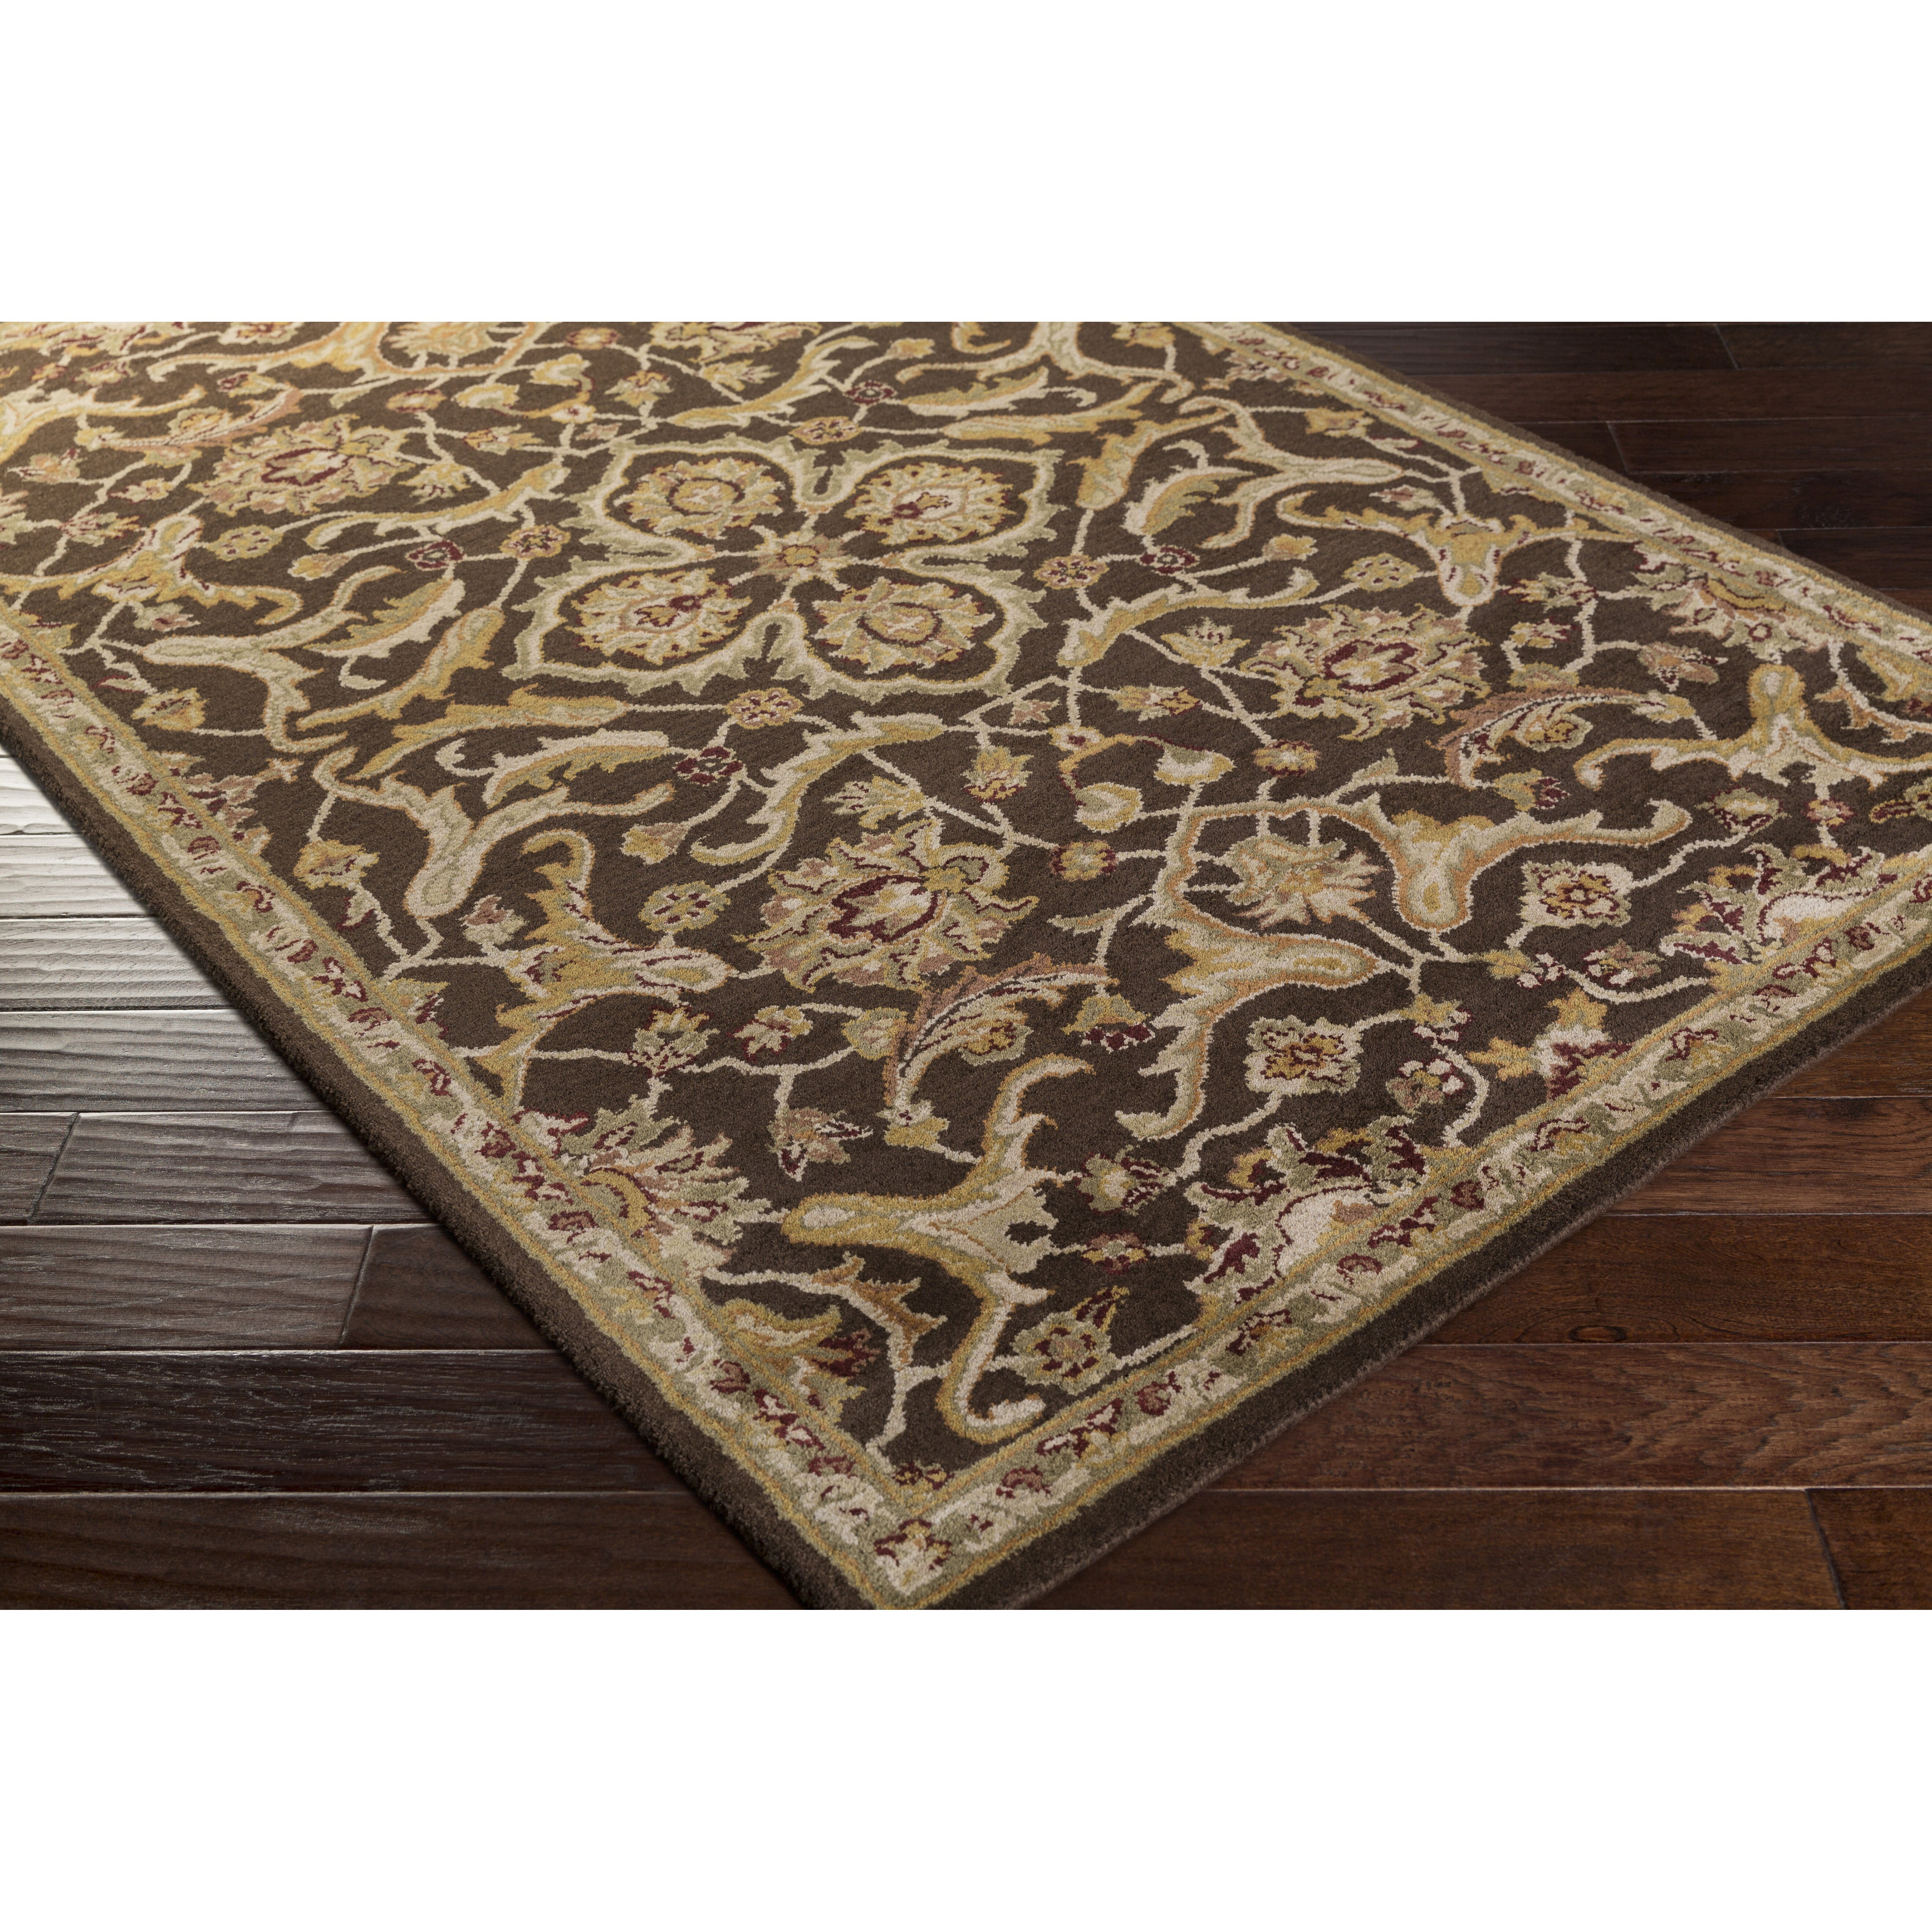 Artistic Stairs Canada: Artistic Weavers Middleton Ava Brown Area Rug & Reviews